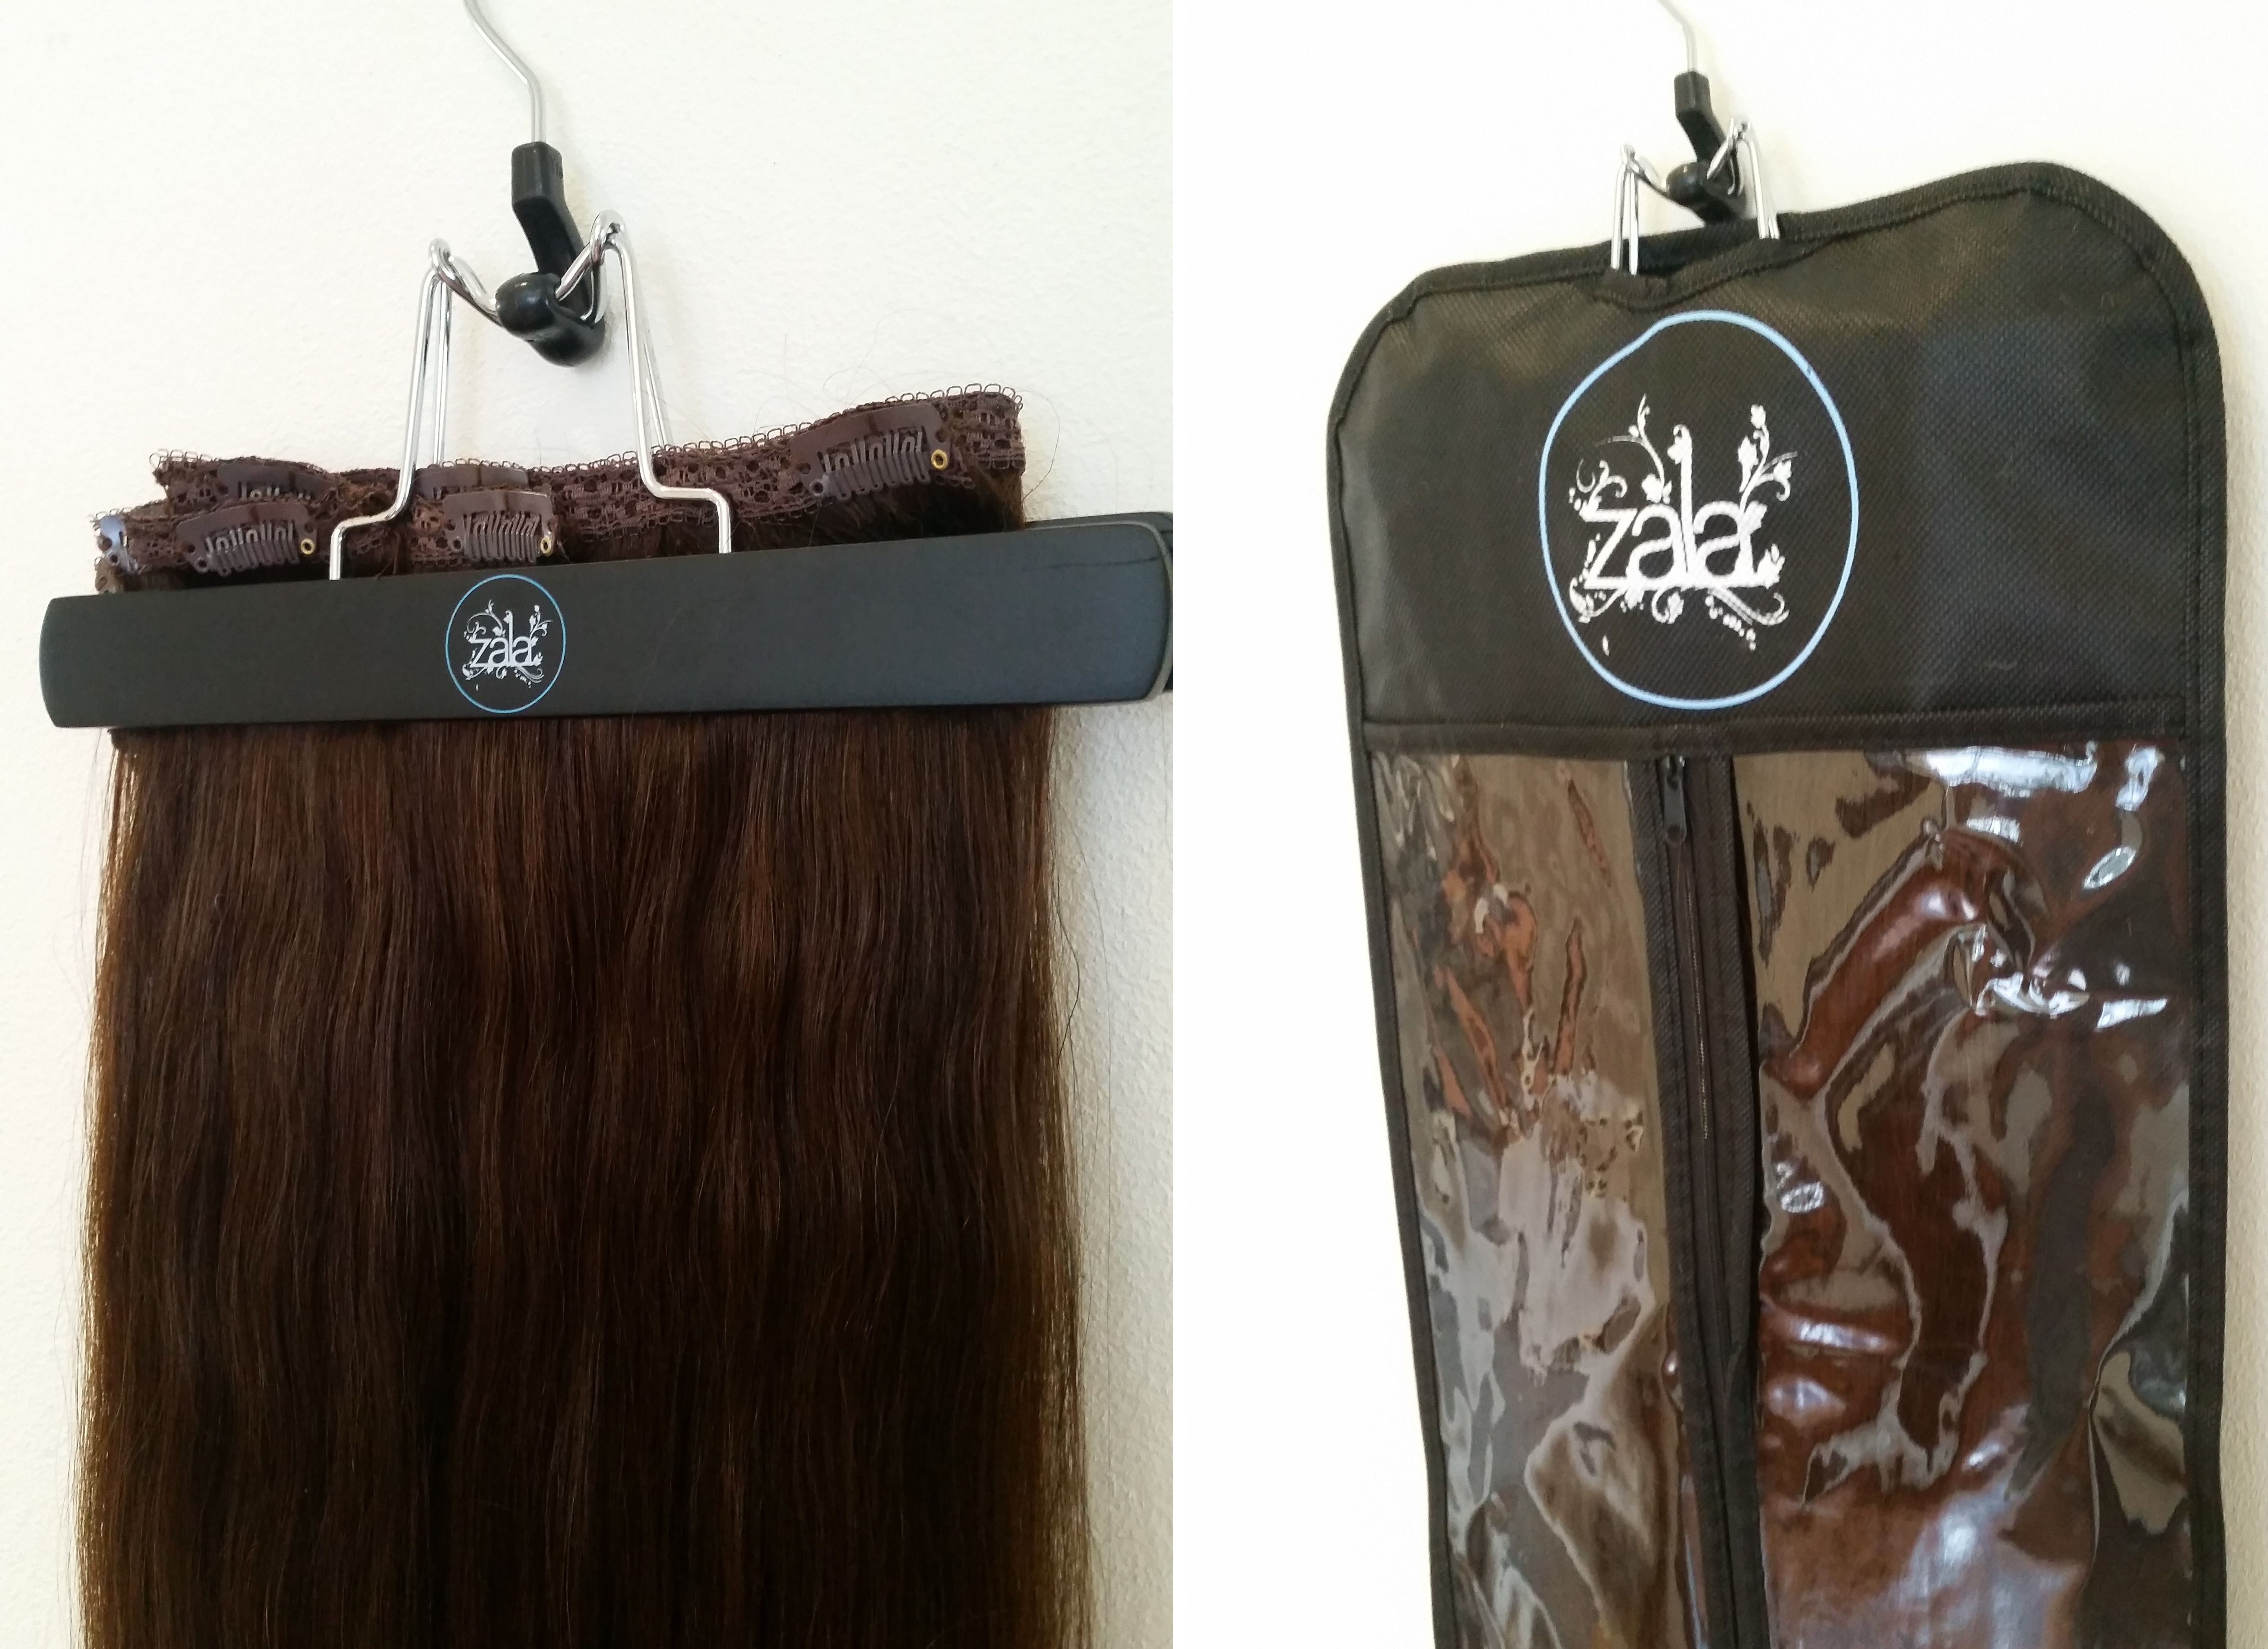 Do You Need A Neat And Subtle Place To Store Your Hair Extensions